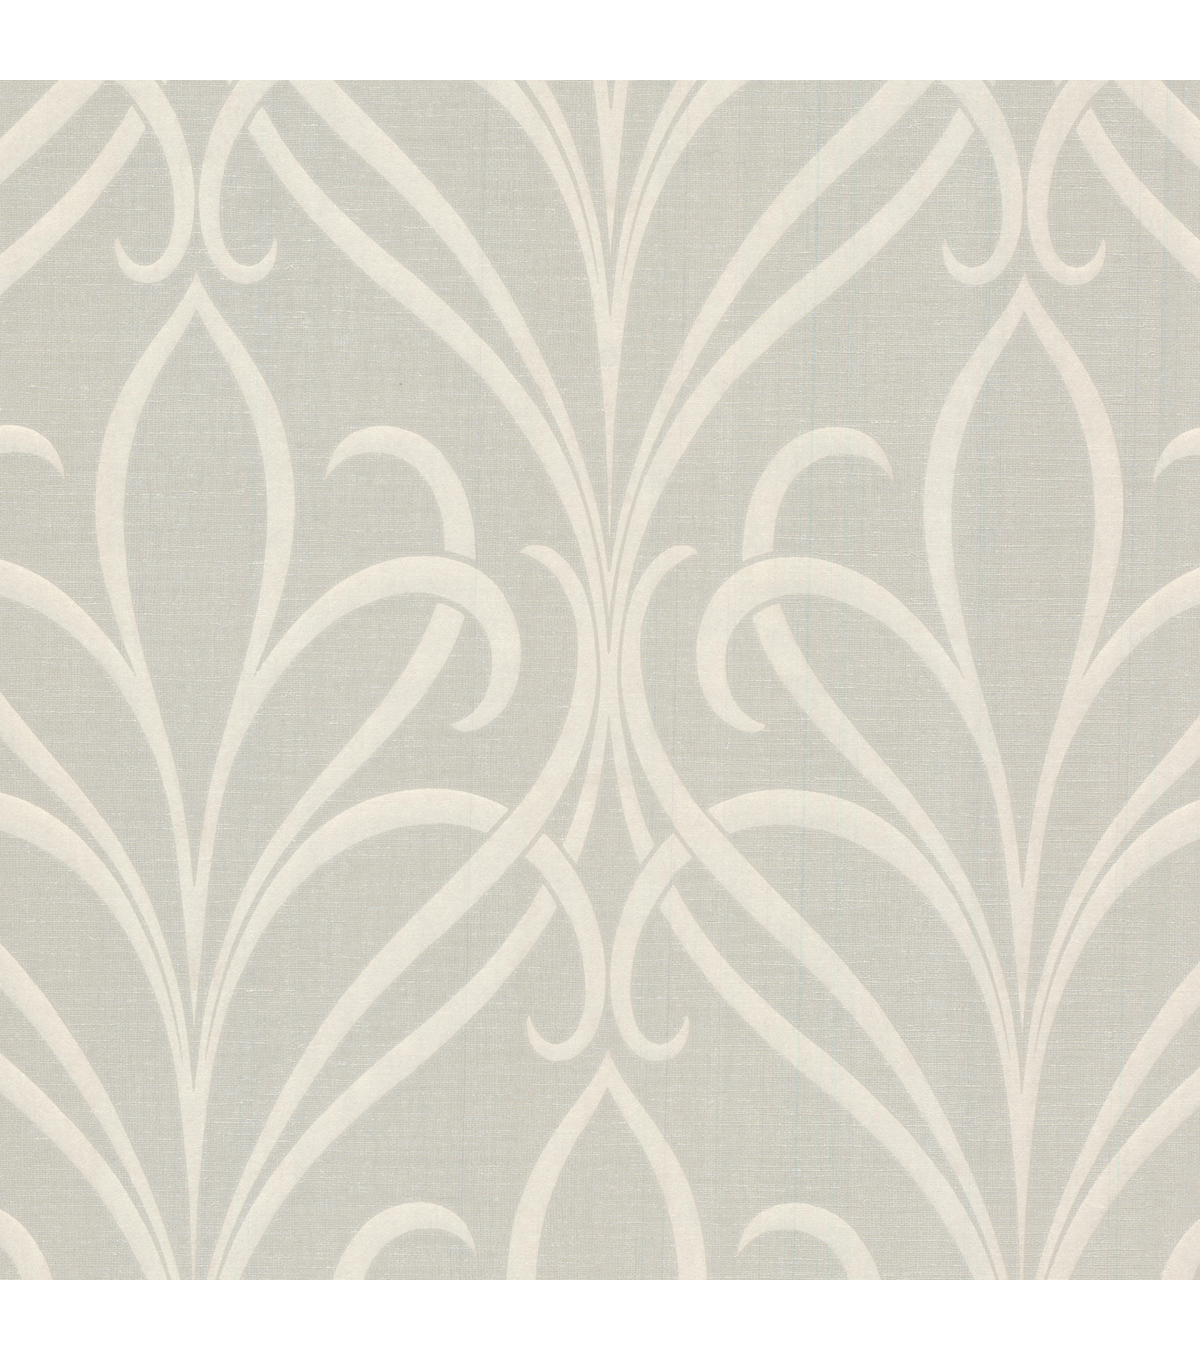 Lalique Taupe Nouveau Damask Wallpaper Sample